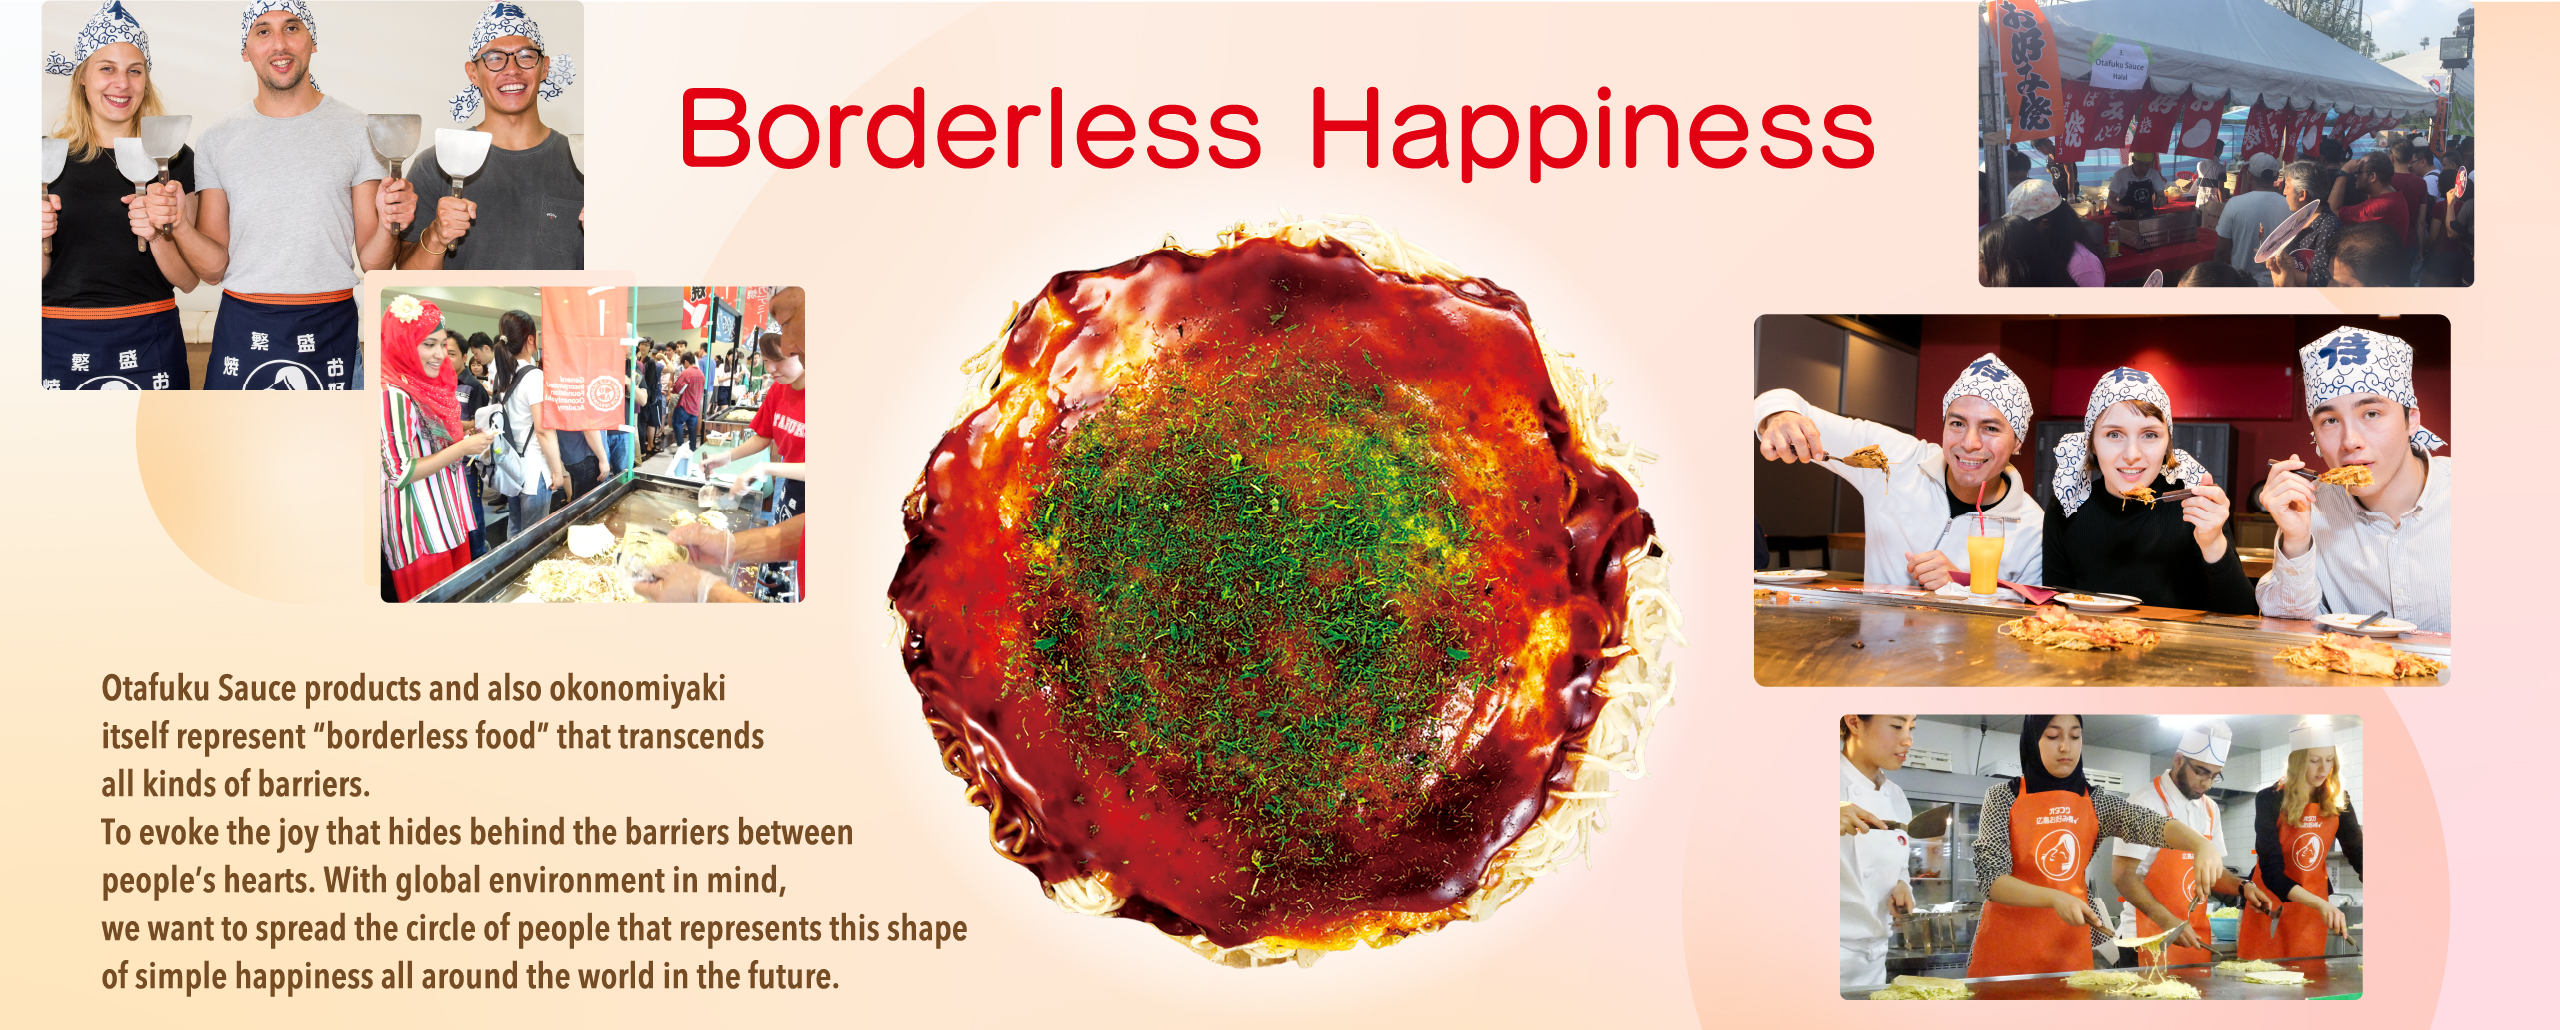 "Borderless Happiness Otafuku Sauce products and also okonomiyaki itself represent ""borderless food"" that transcends all kinds of barriers. To evoke the joy that hides behind the barriers between prople's hearts. With global enbironment in mind, we want to spread the circle of people that represents this shape of simple happiness all around the world in the future."